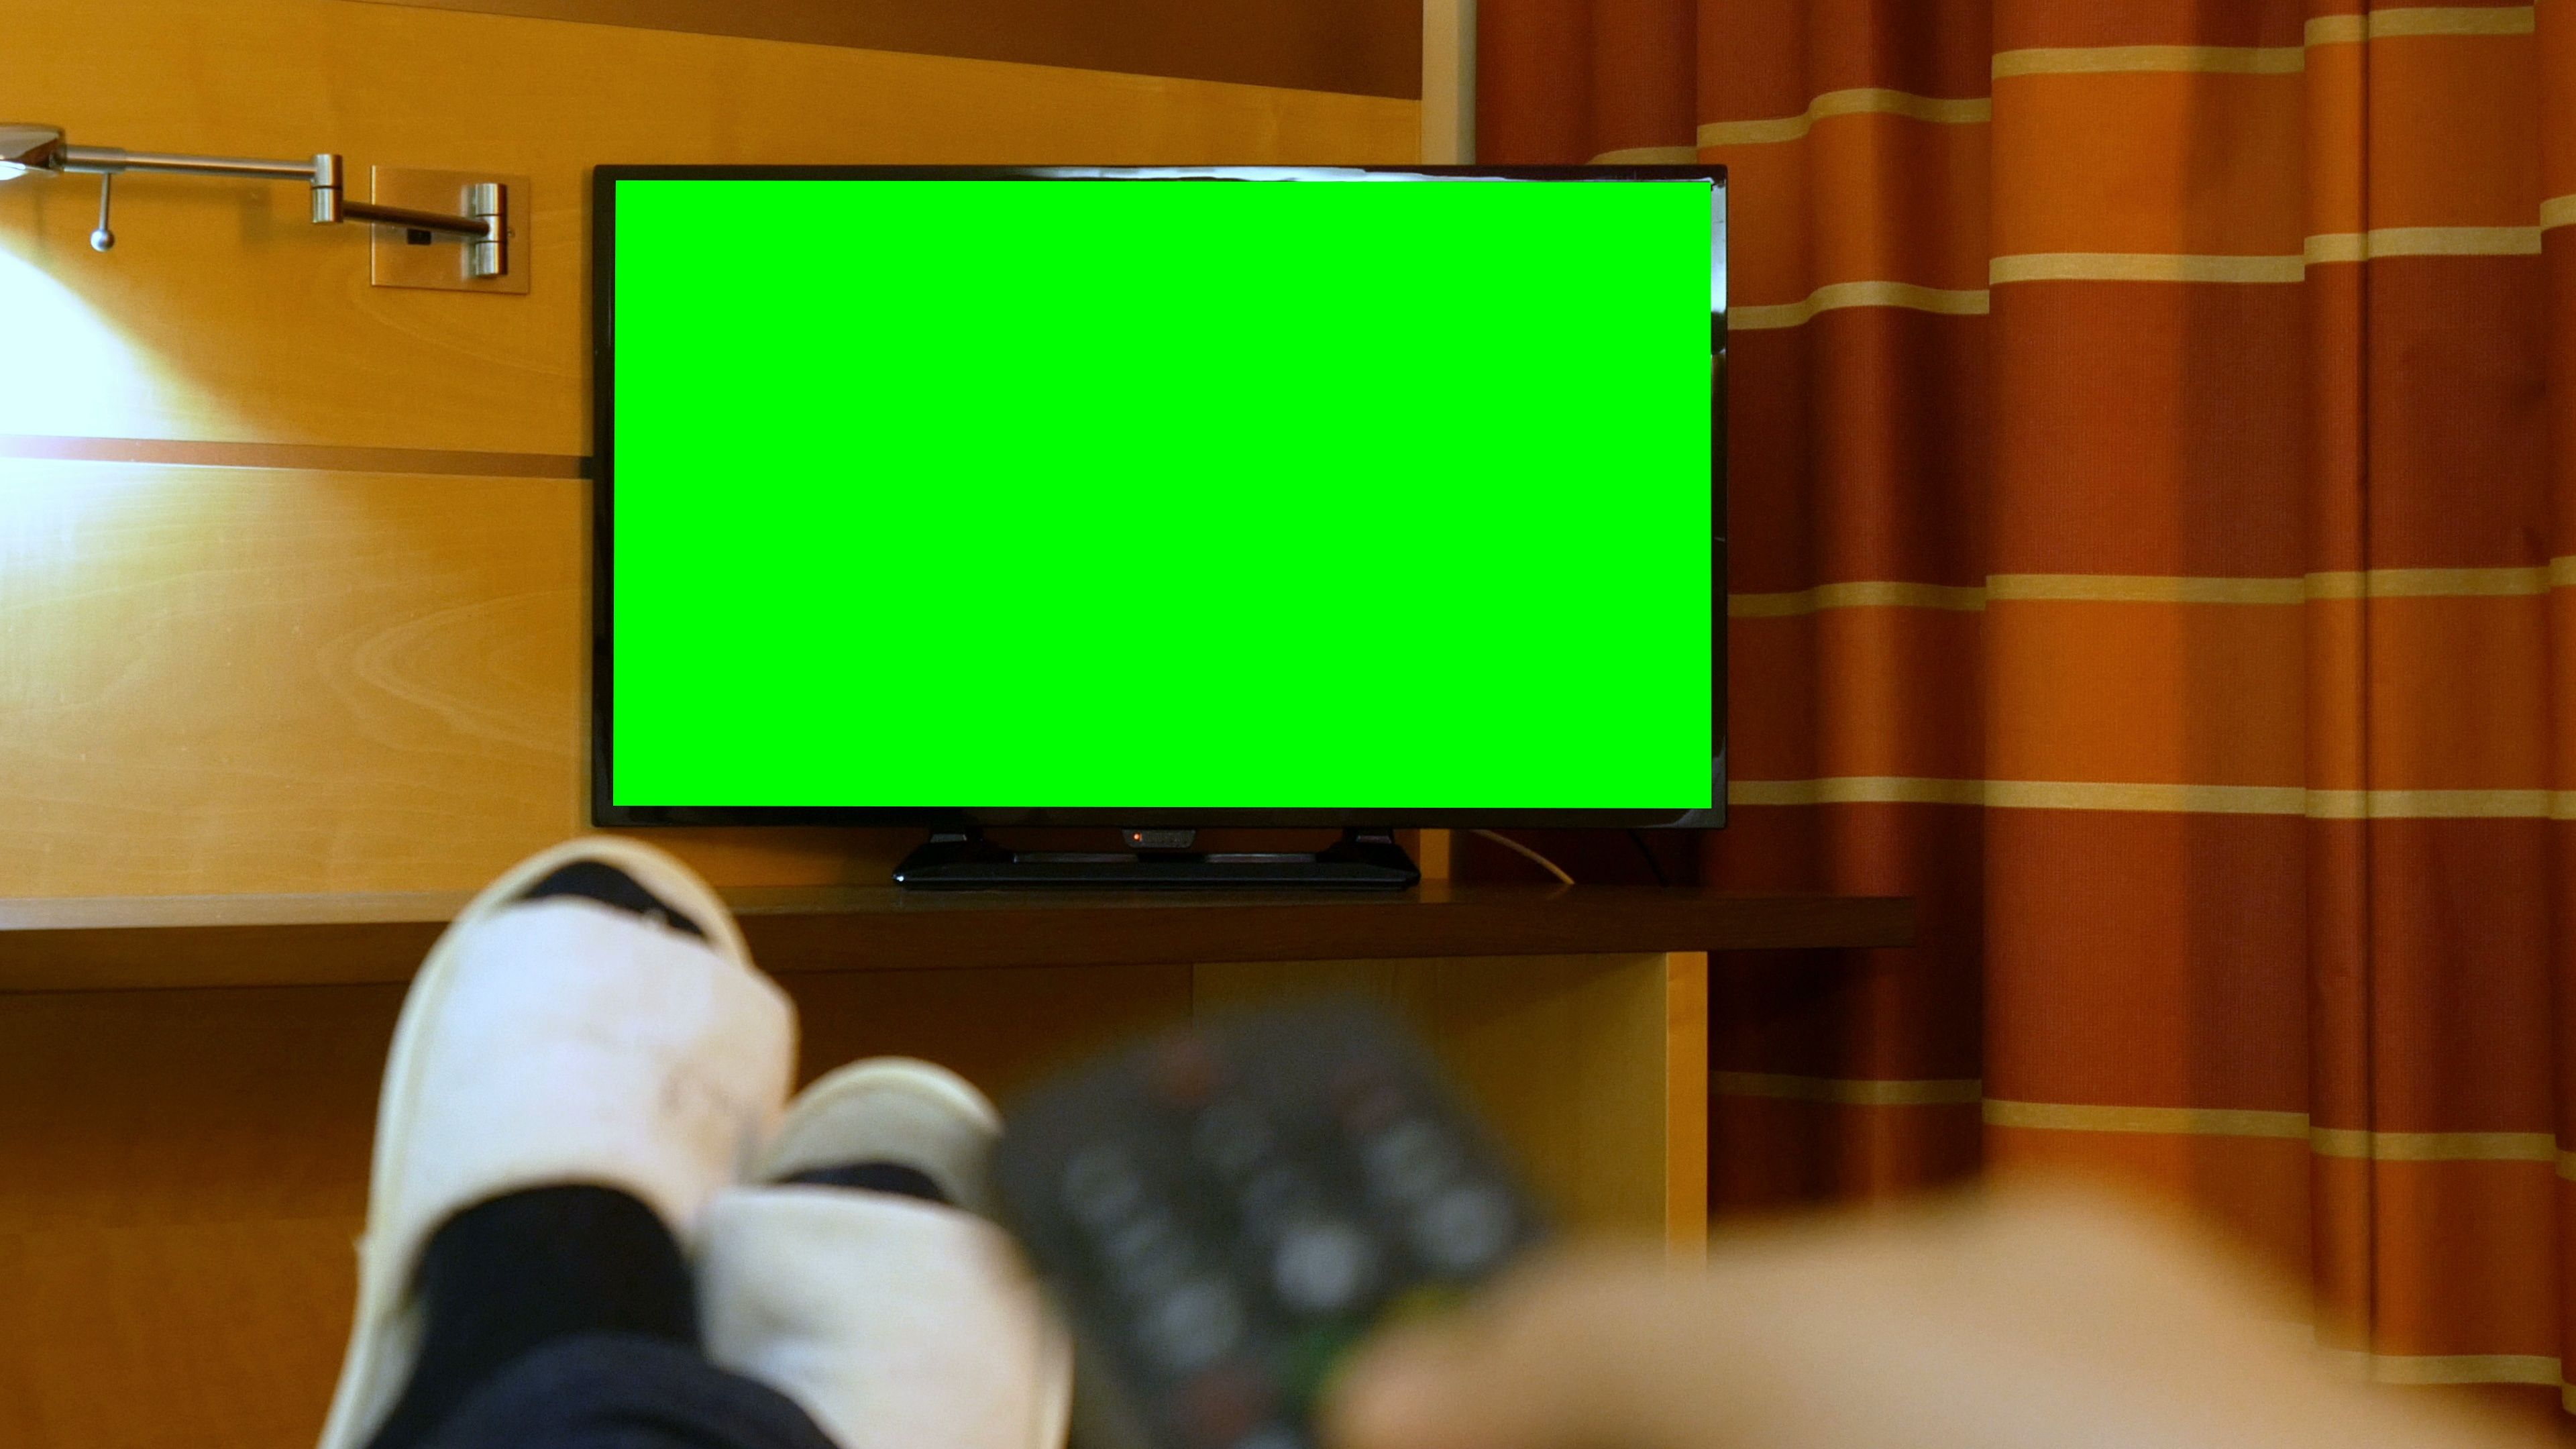 Man Lying Down Bed Relaxing On The Bed Watching Green Screen Tv